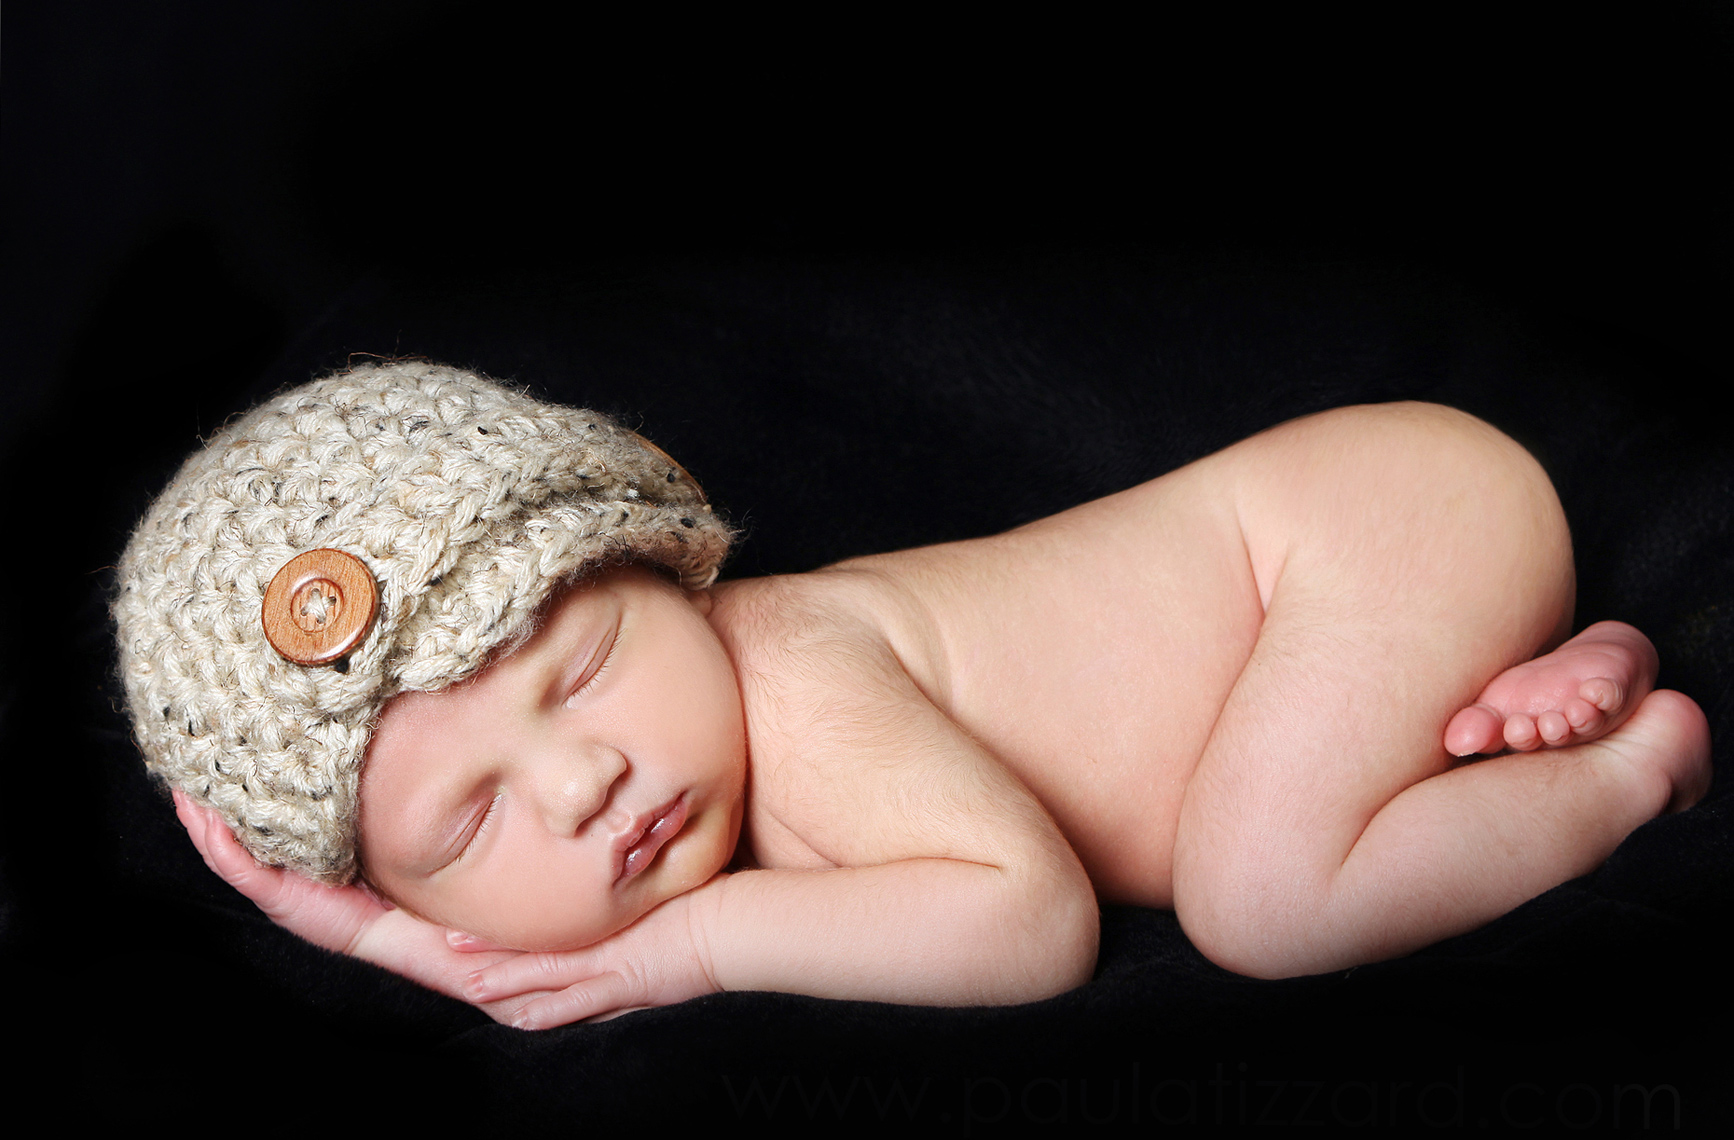 Newborn, baby and child photography studio, London, Ontario